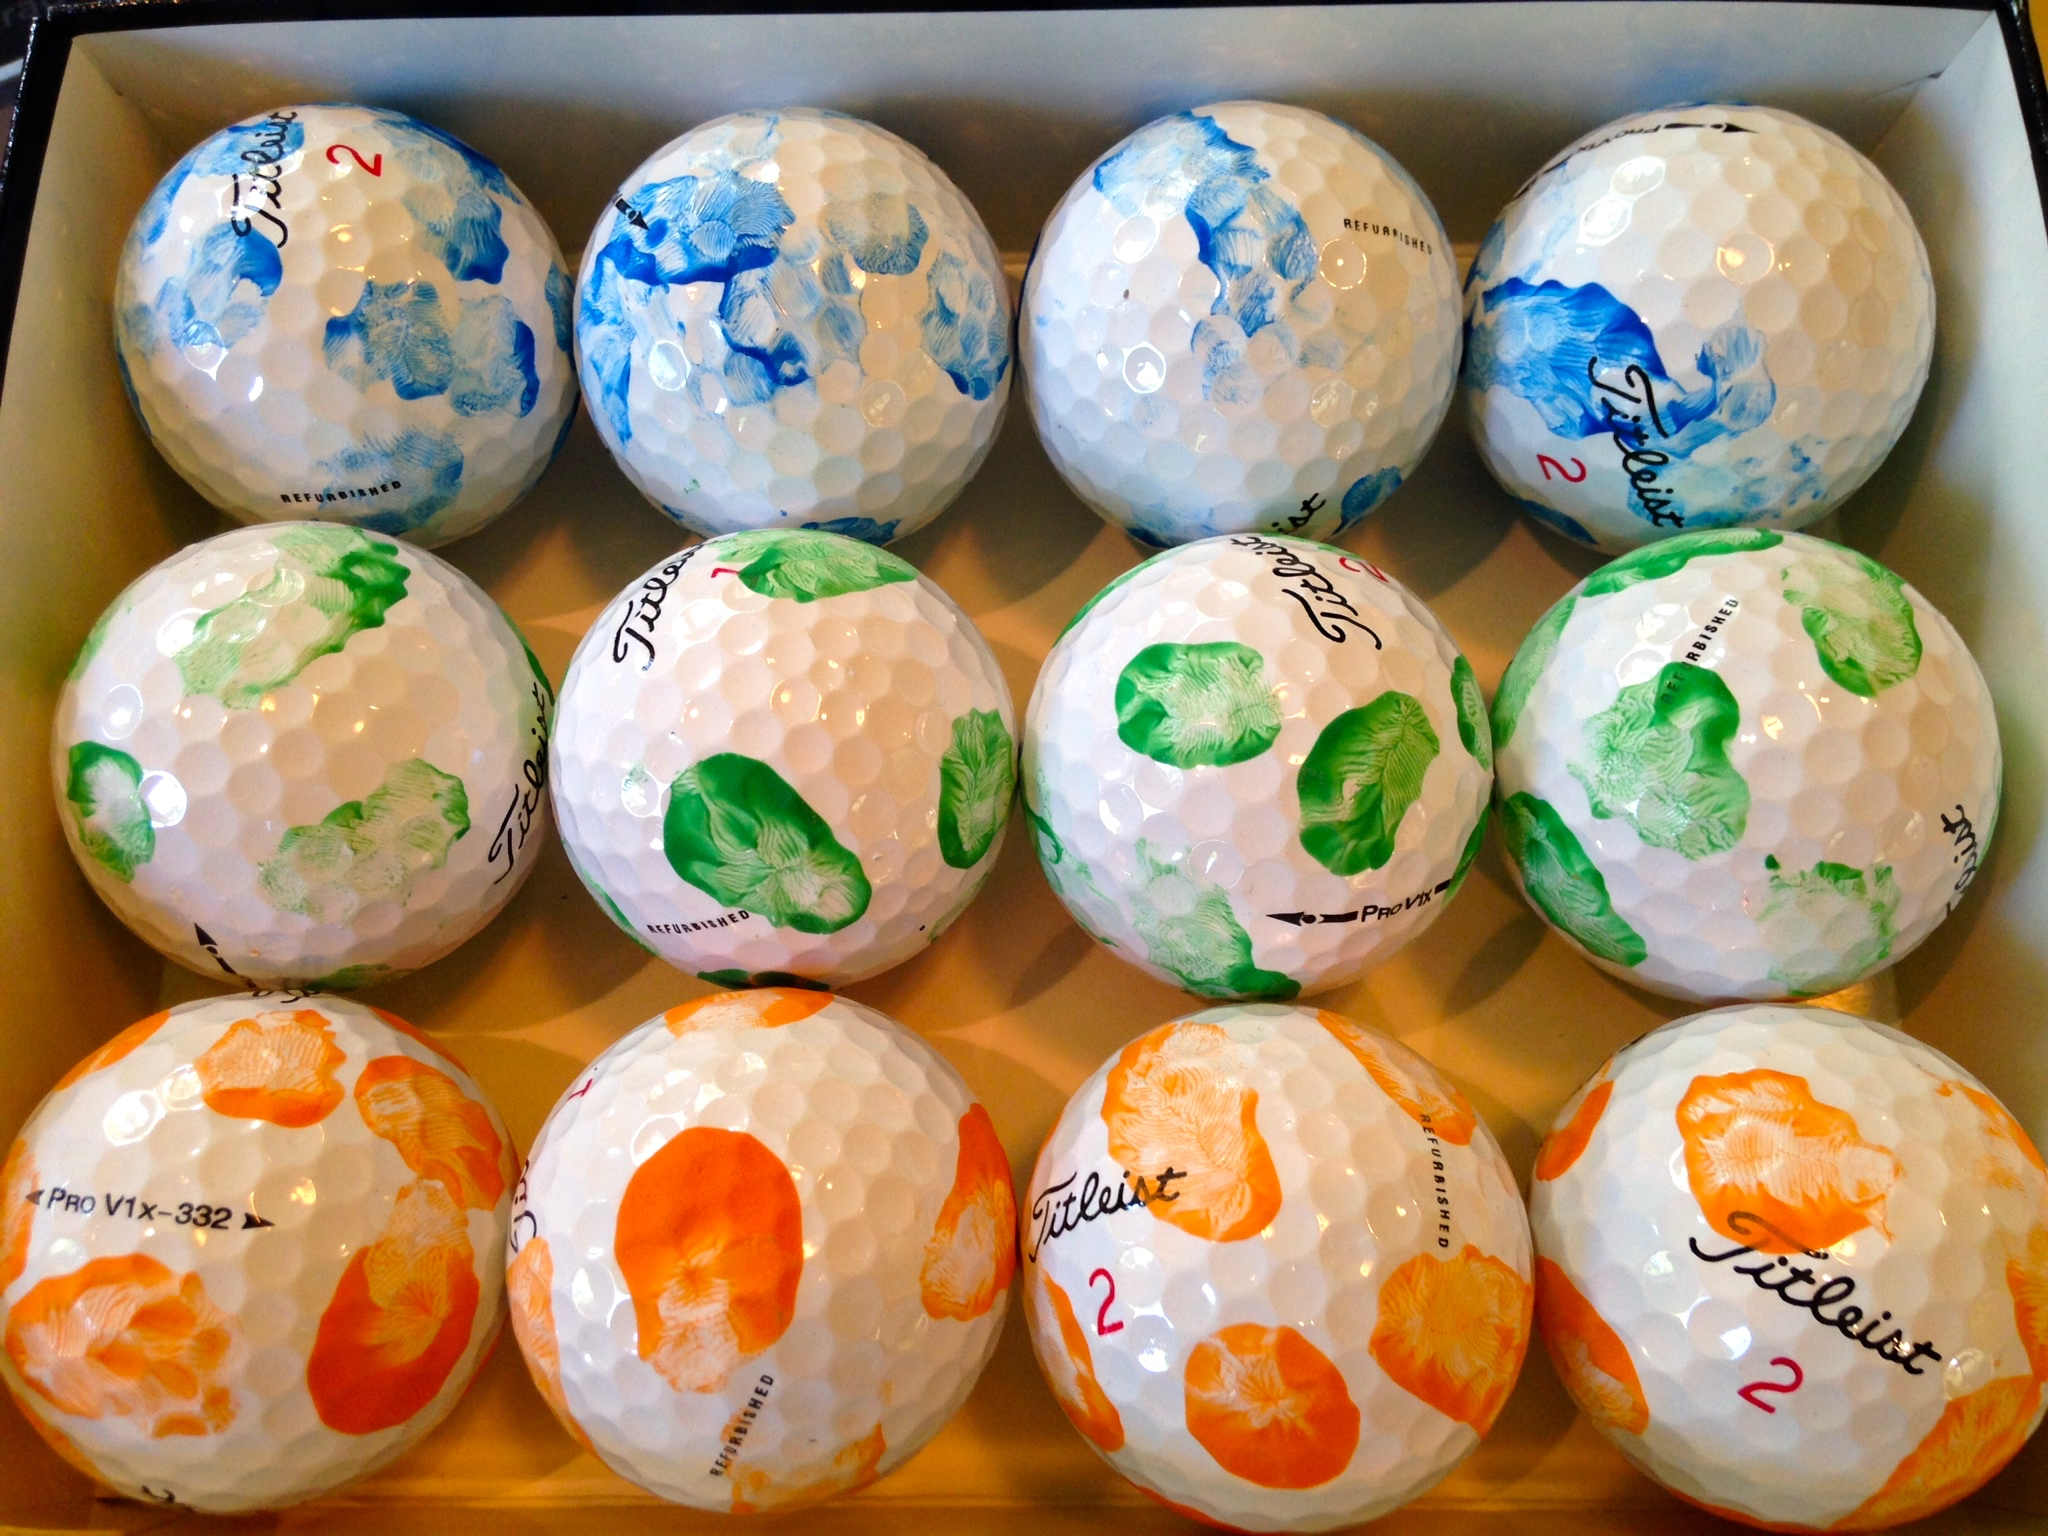 Fathers day gift ideas the pink daily this is more of a keepsake item than actual golf balls that dad can use i think the paint would actually come off if they are used or get wet negle Gallery